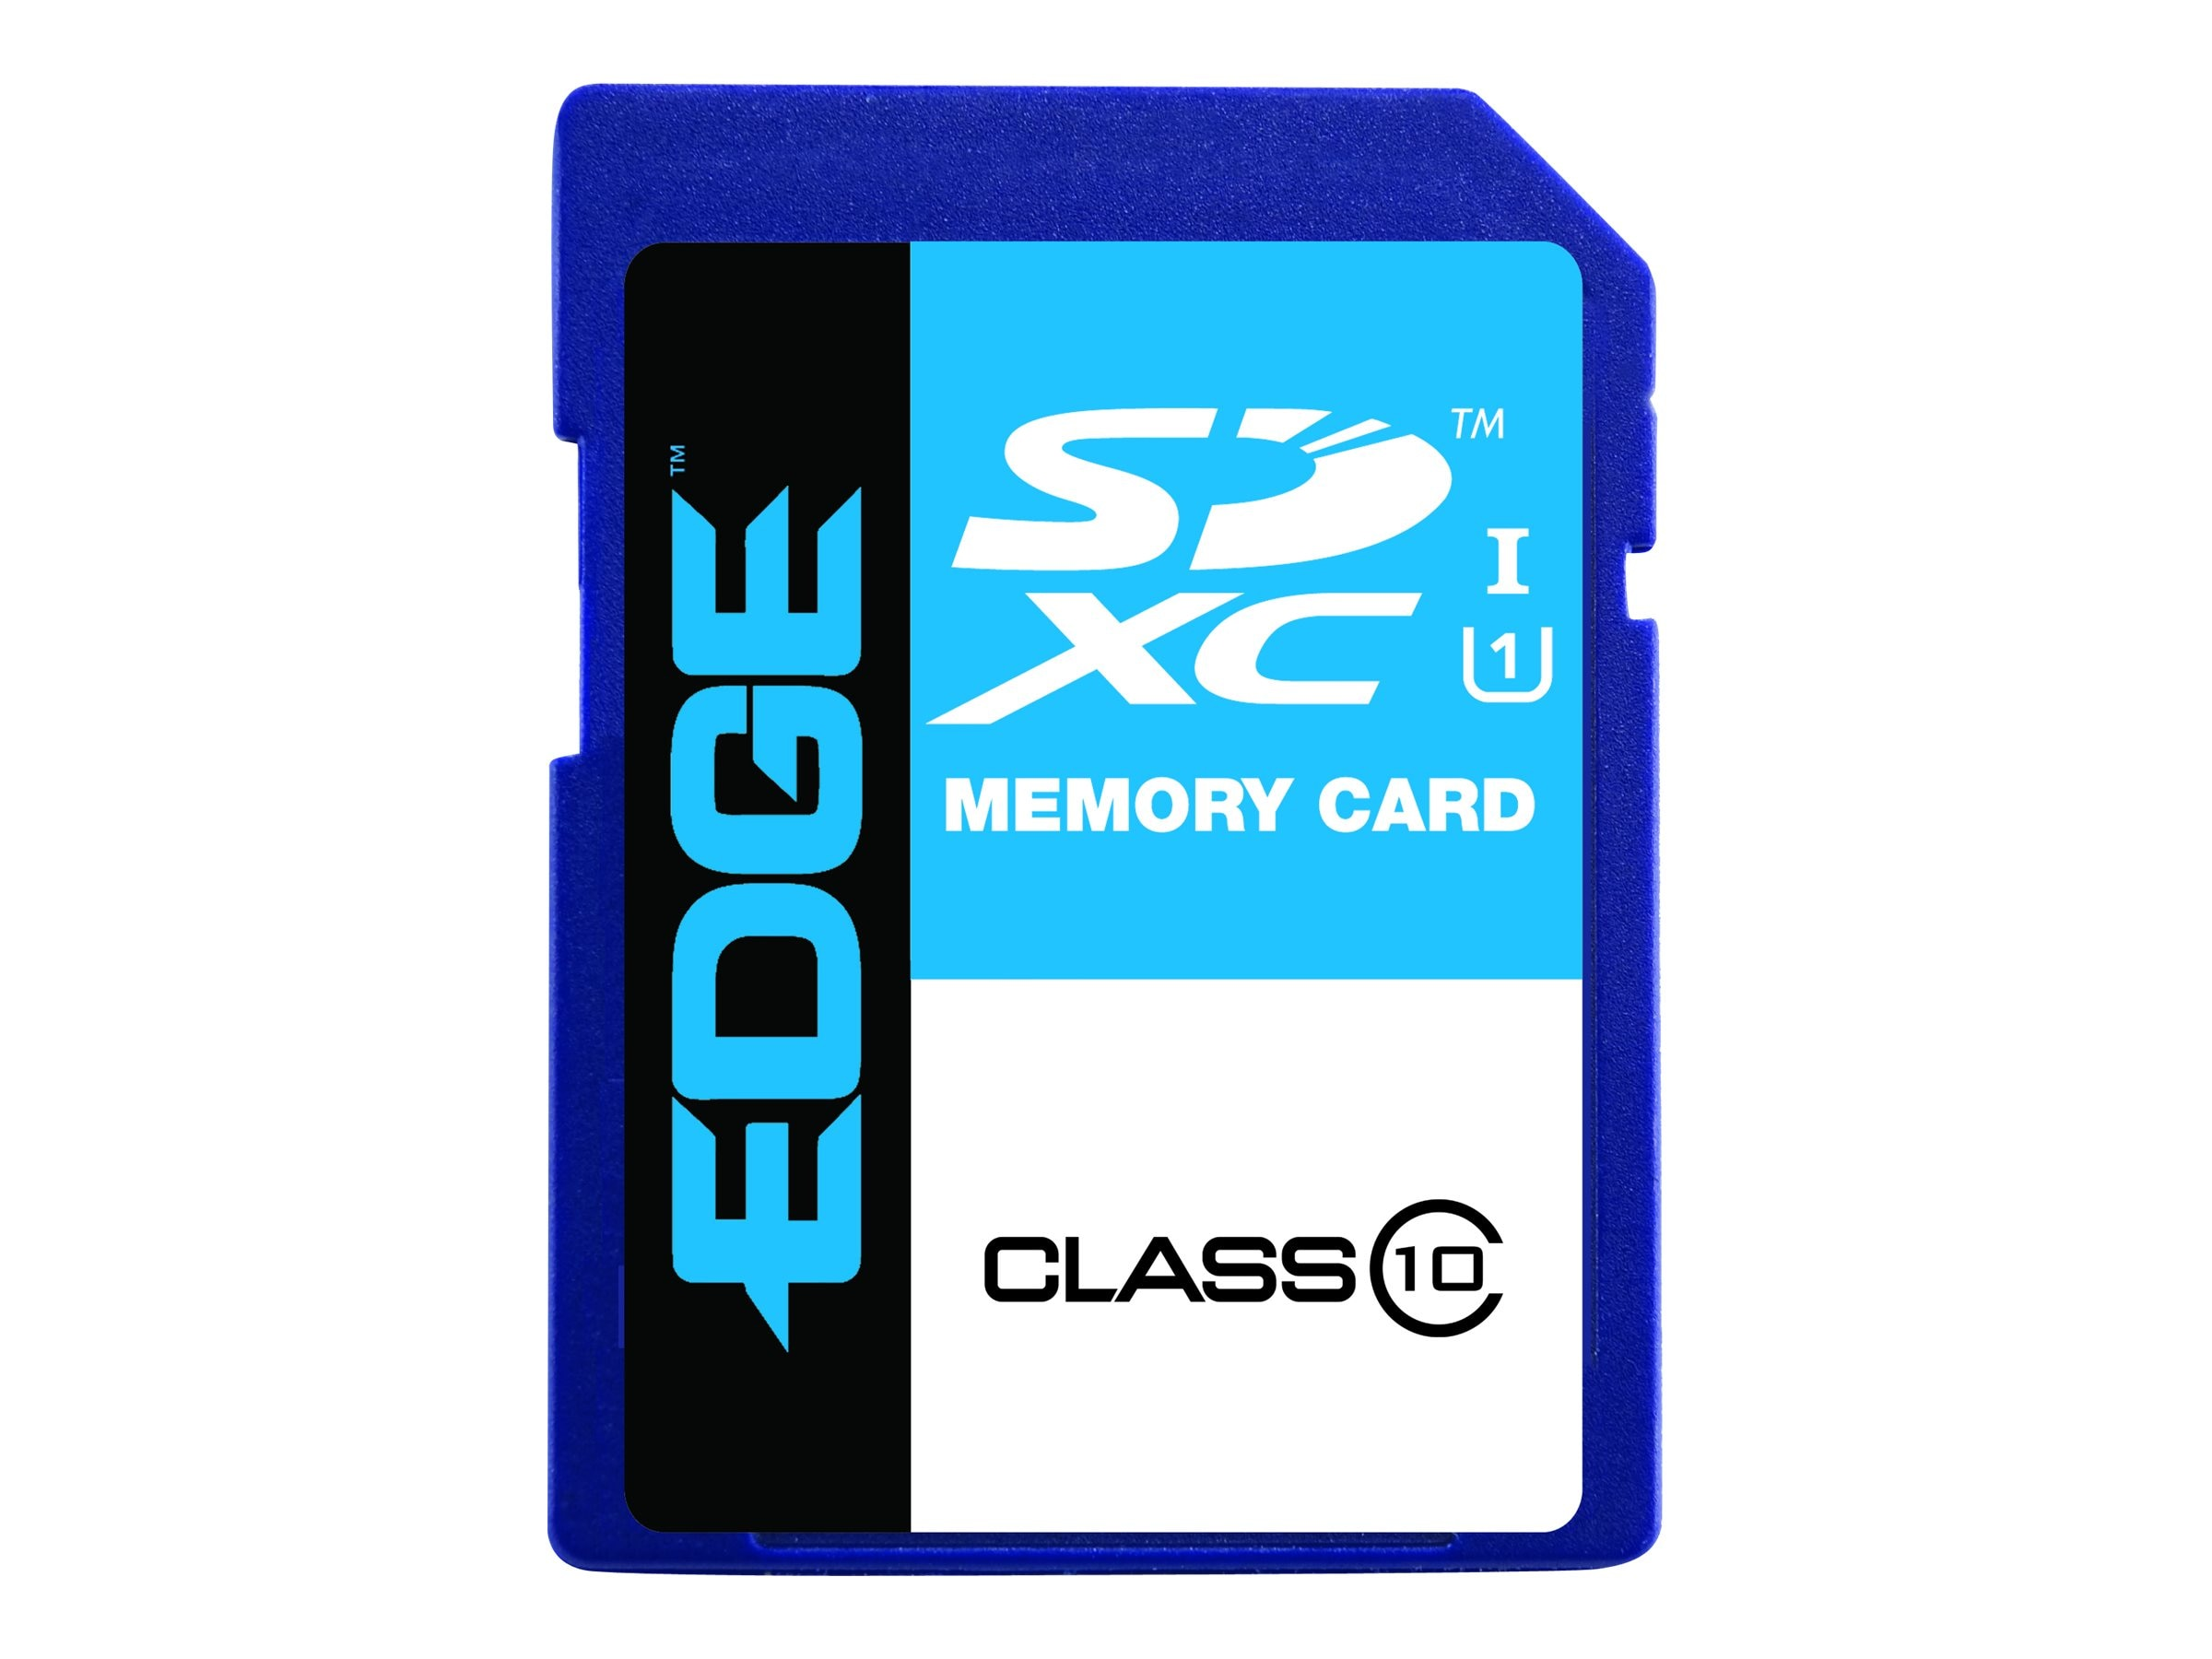 Edge 64GB SDXC Class 10 (UHS-1) Memory Card, PE229061, 12856359, Memory - Flash